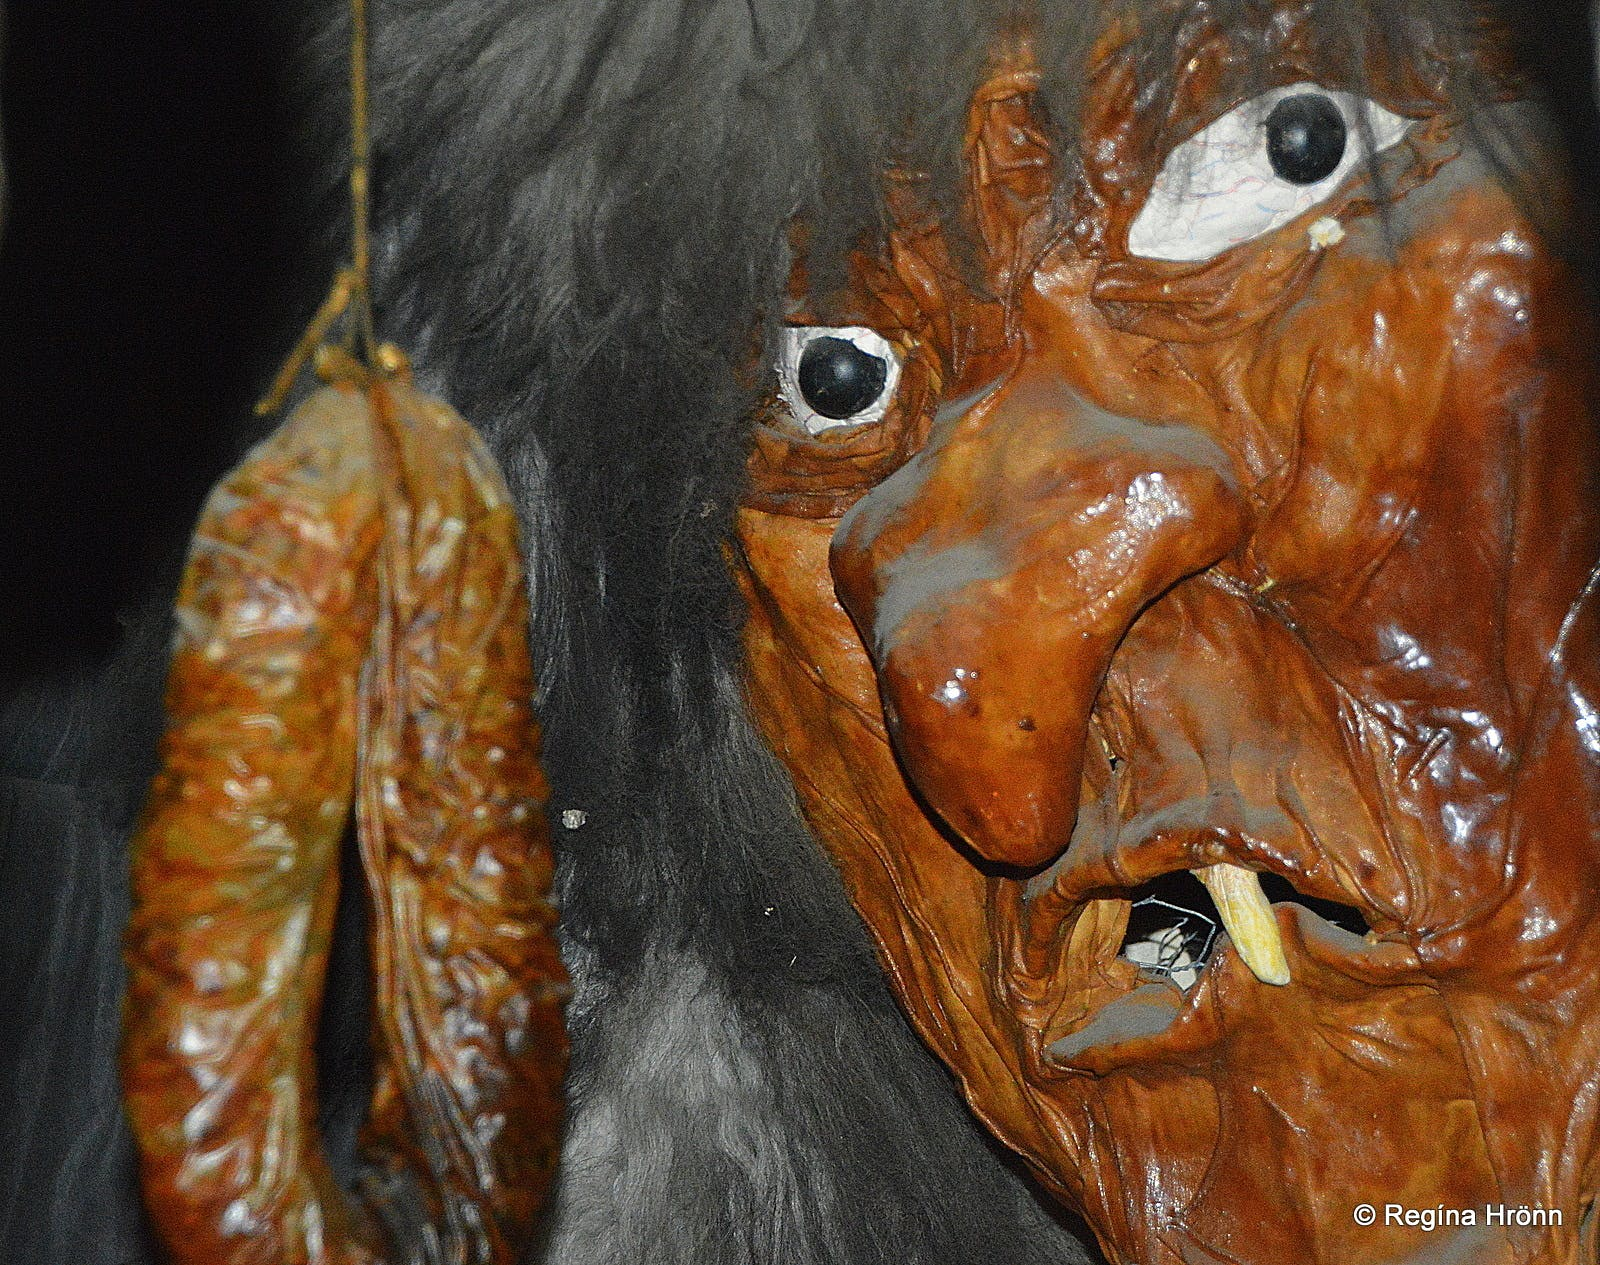 Gryla is a monstrous troll said to eat children over Christmas in Iceland.